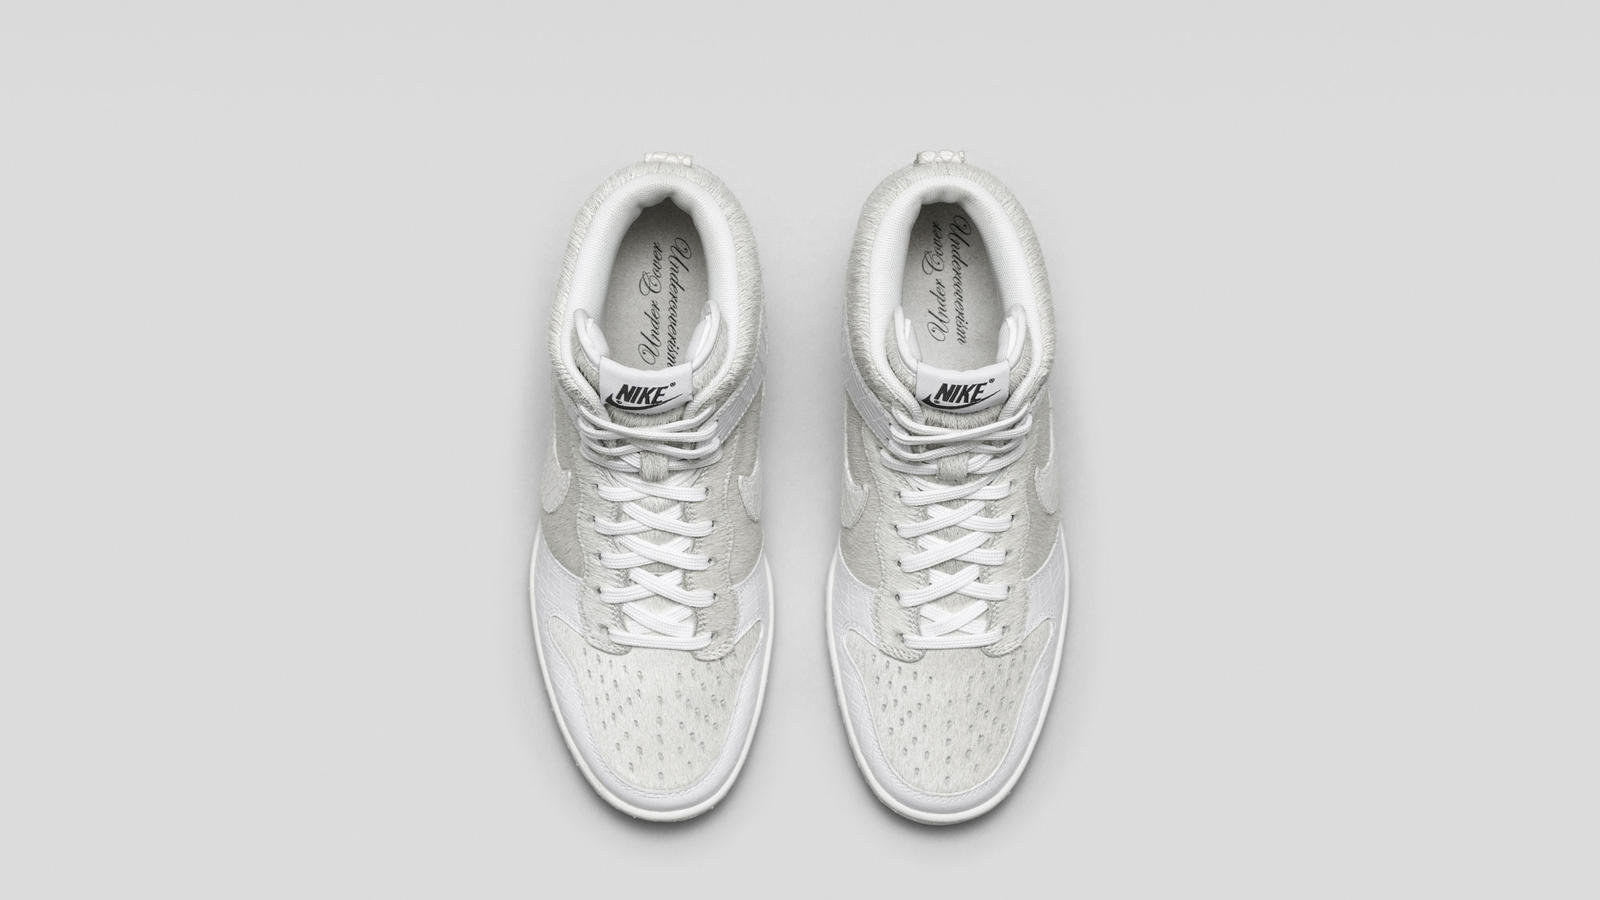 717122_100_Dunk_Sky_Hi_Undercover_White-Top_Down_Pair-HO14_B6_APP-13078